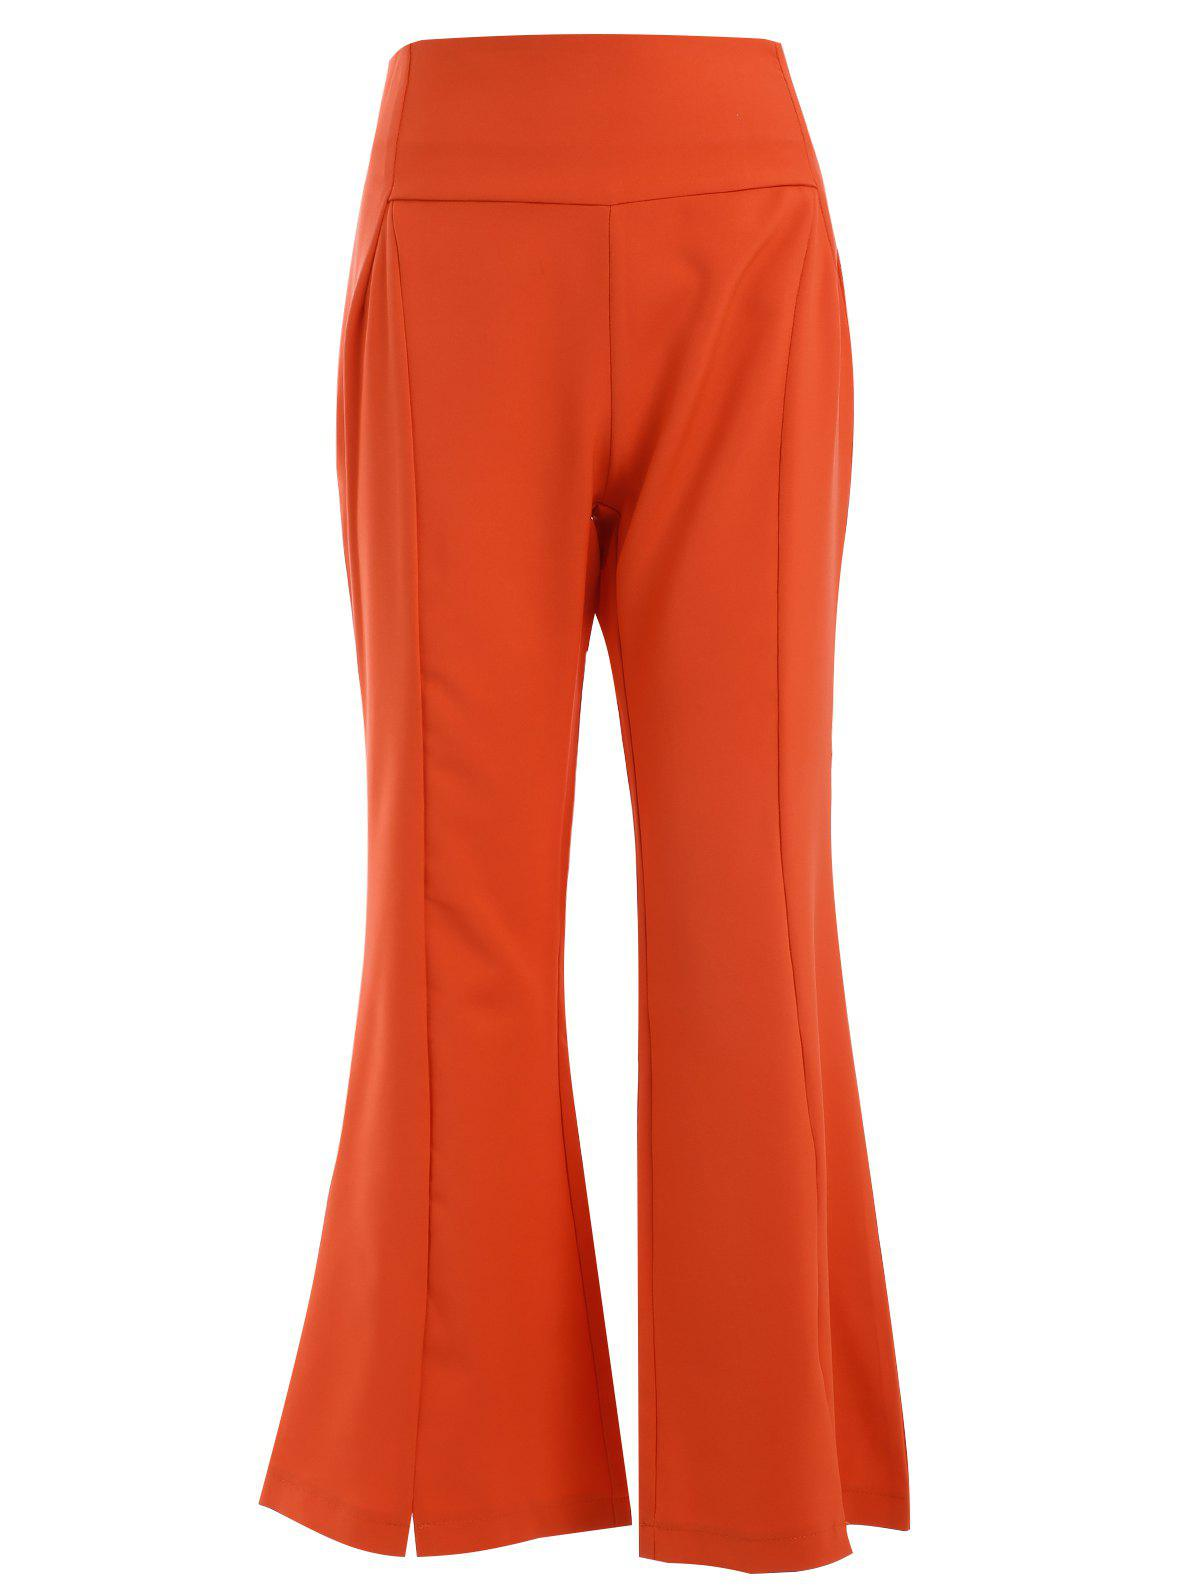 Stylish Women's Solid Color High-Waisted Boot Cut Nine Minutes of Pants